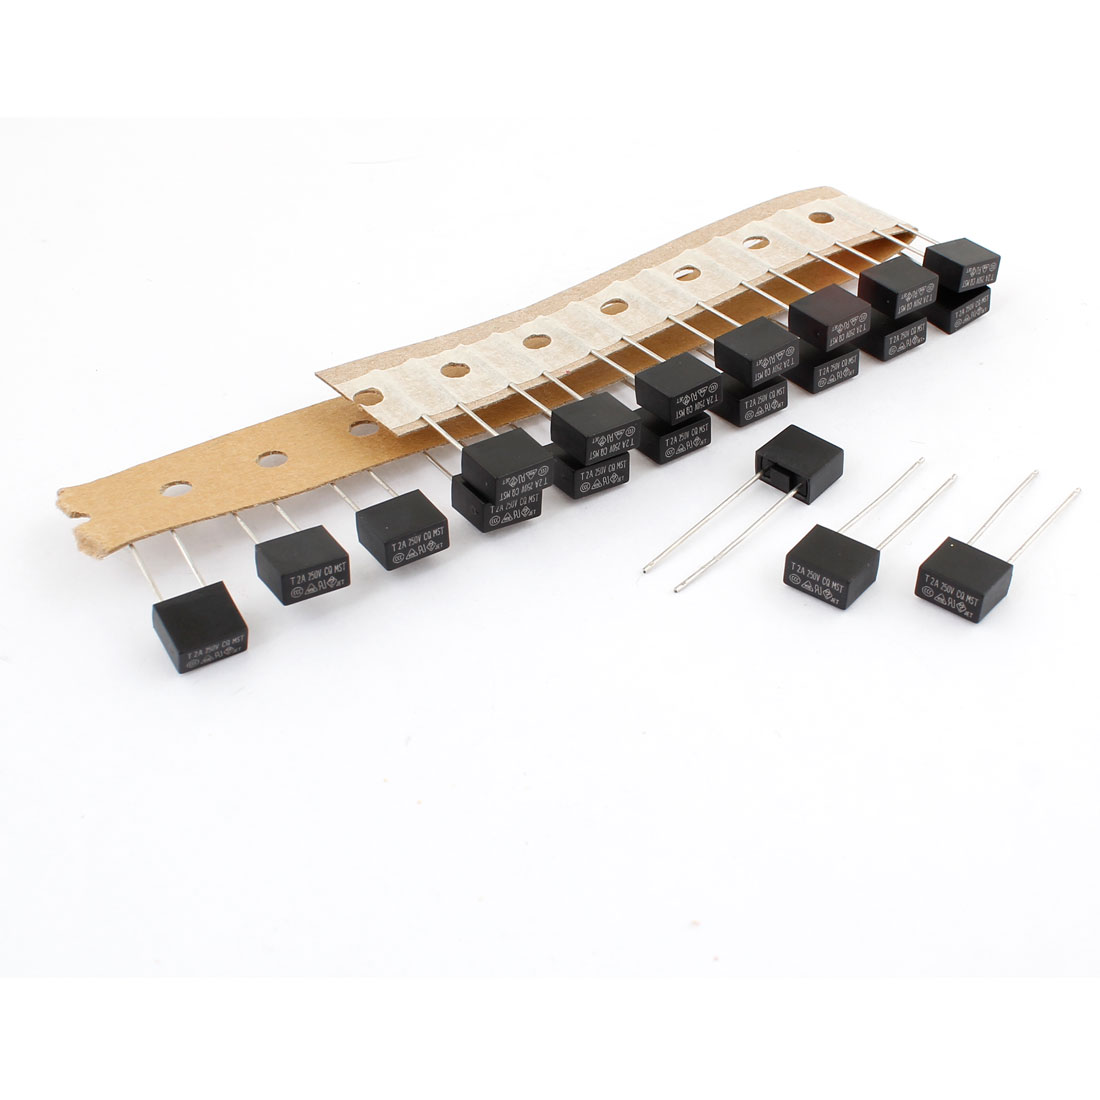 20 Pcs 250V 2A Radial Leads Slow Blow Type DIP Square Micro Fuses